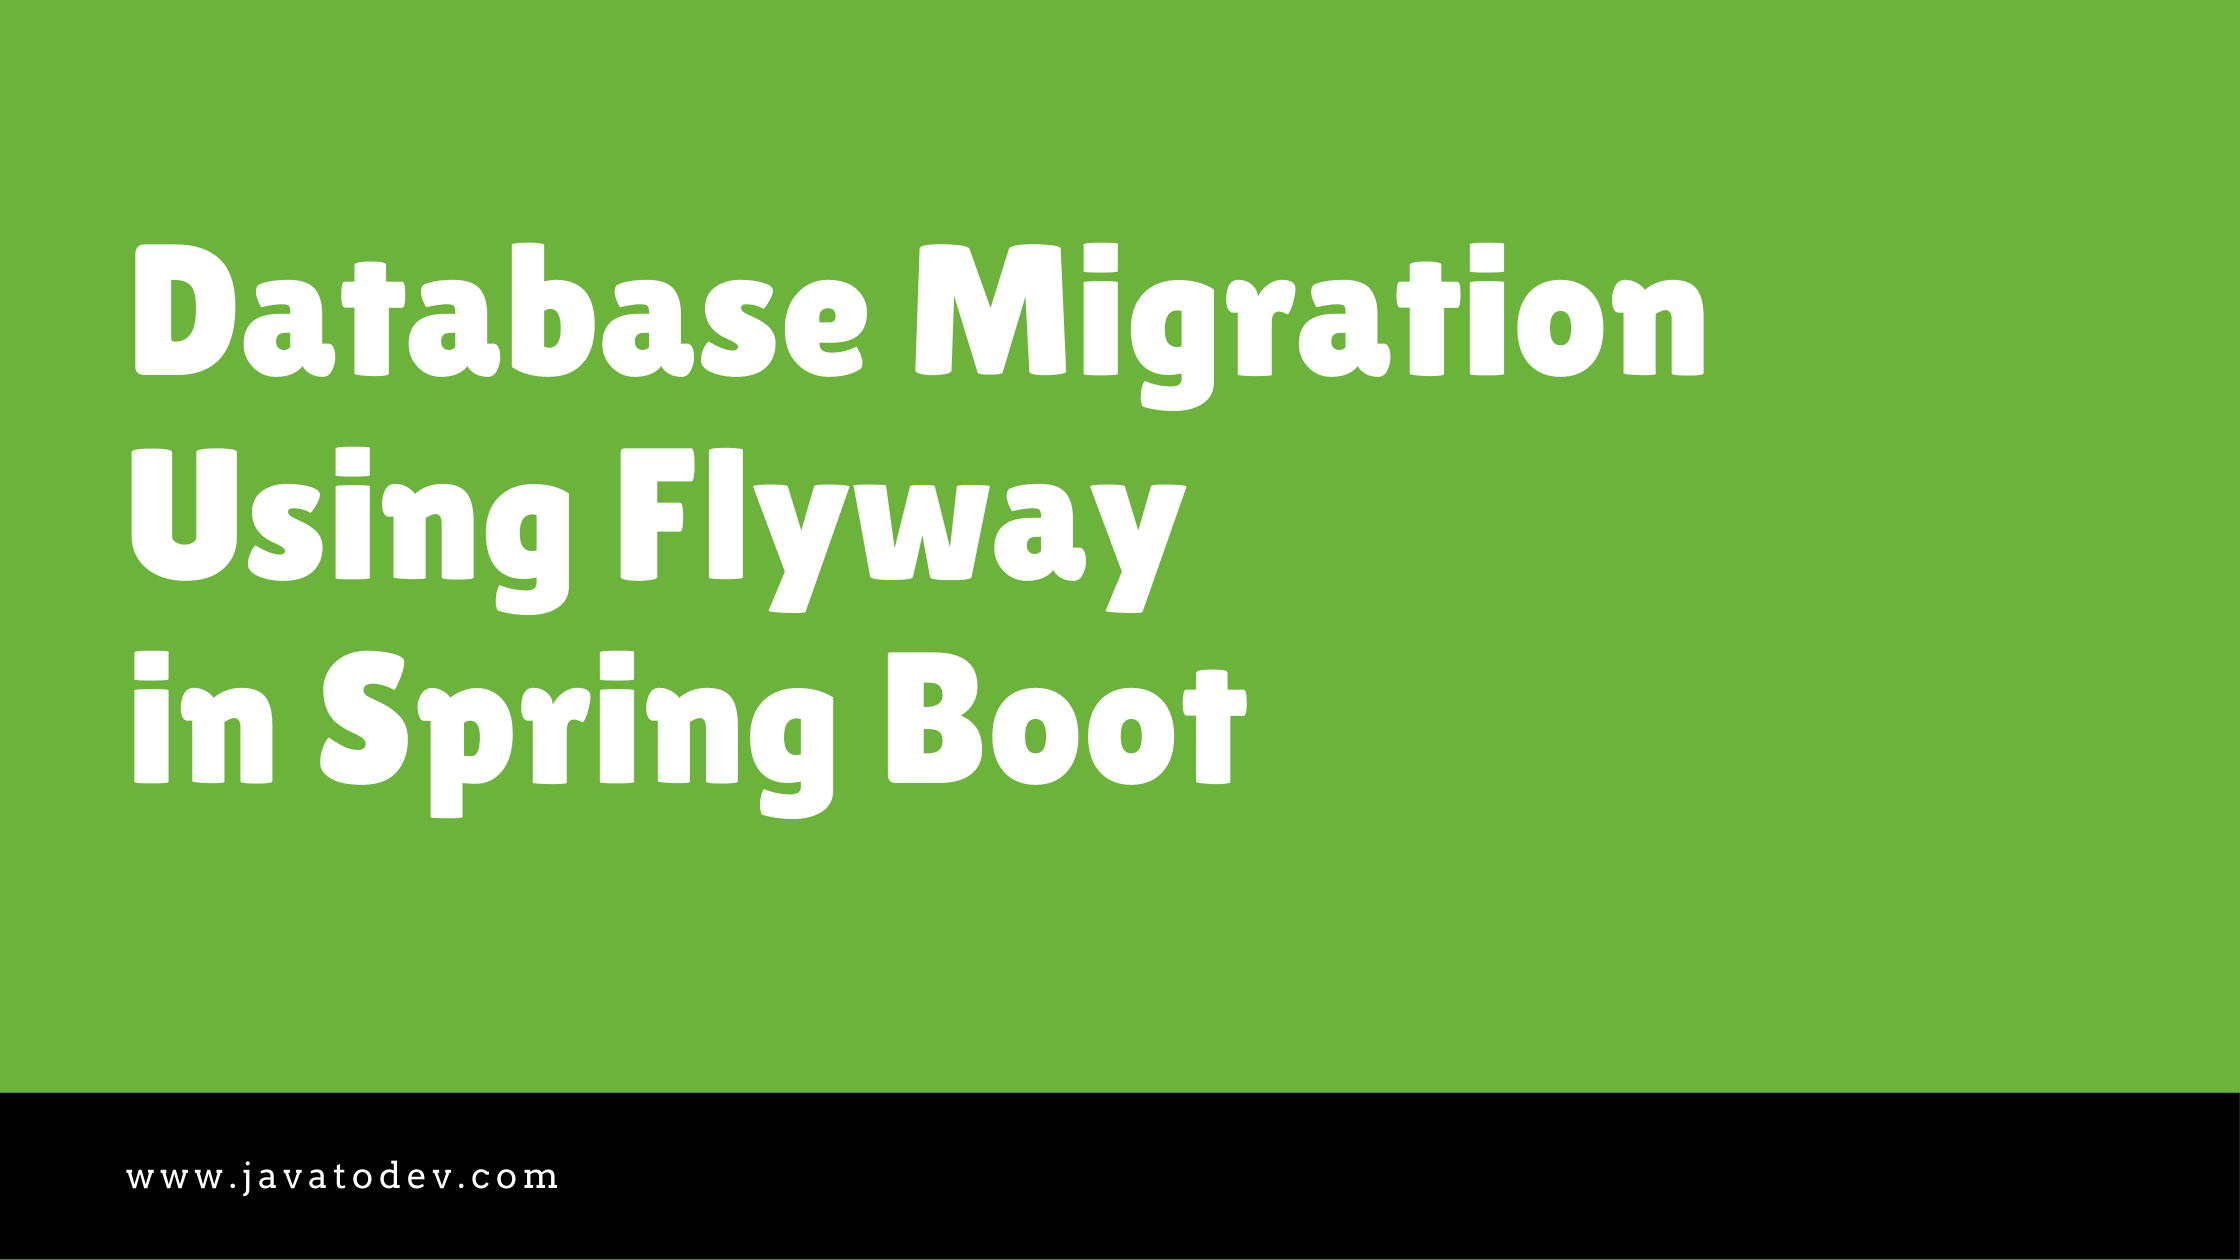 Database Migration Using Flyway in